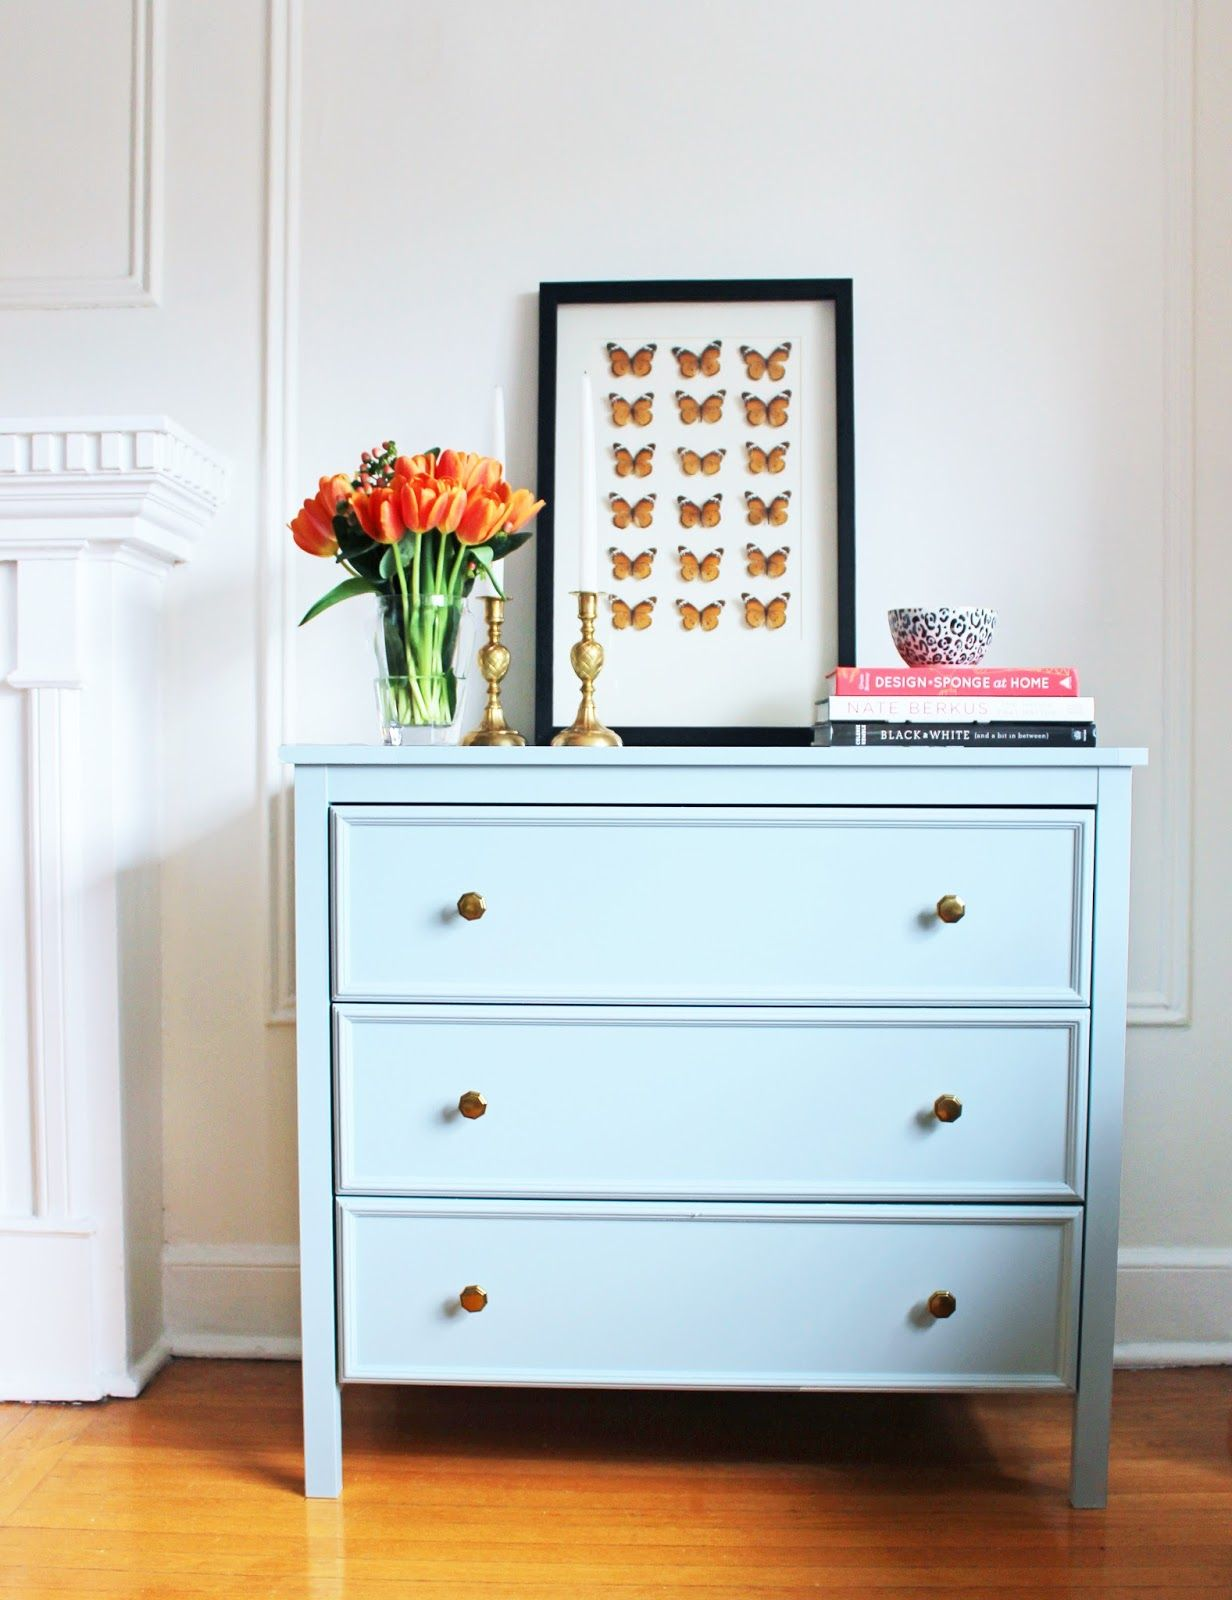 Tiffany leigh interior design diy ikea hack chest of